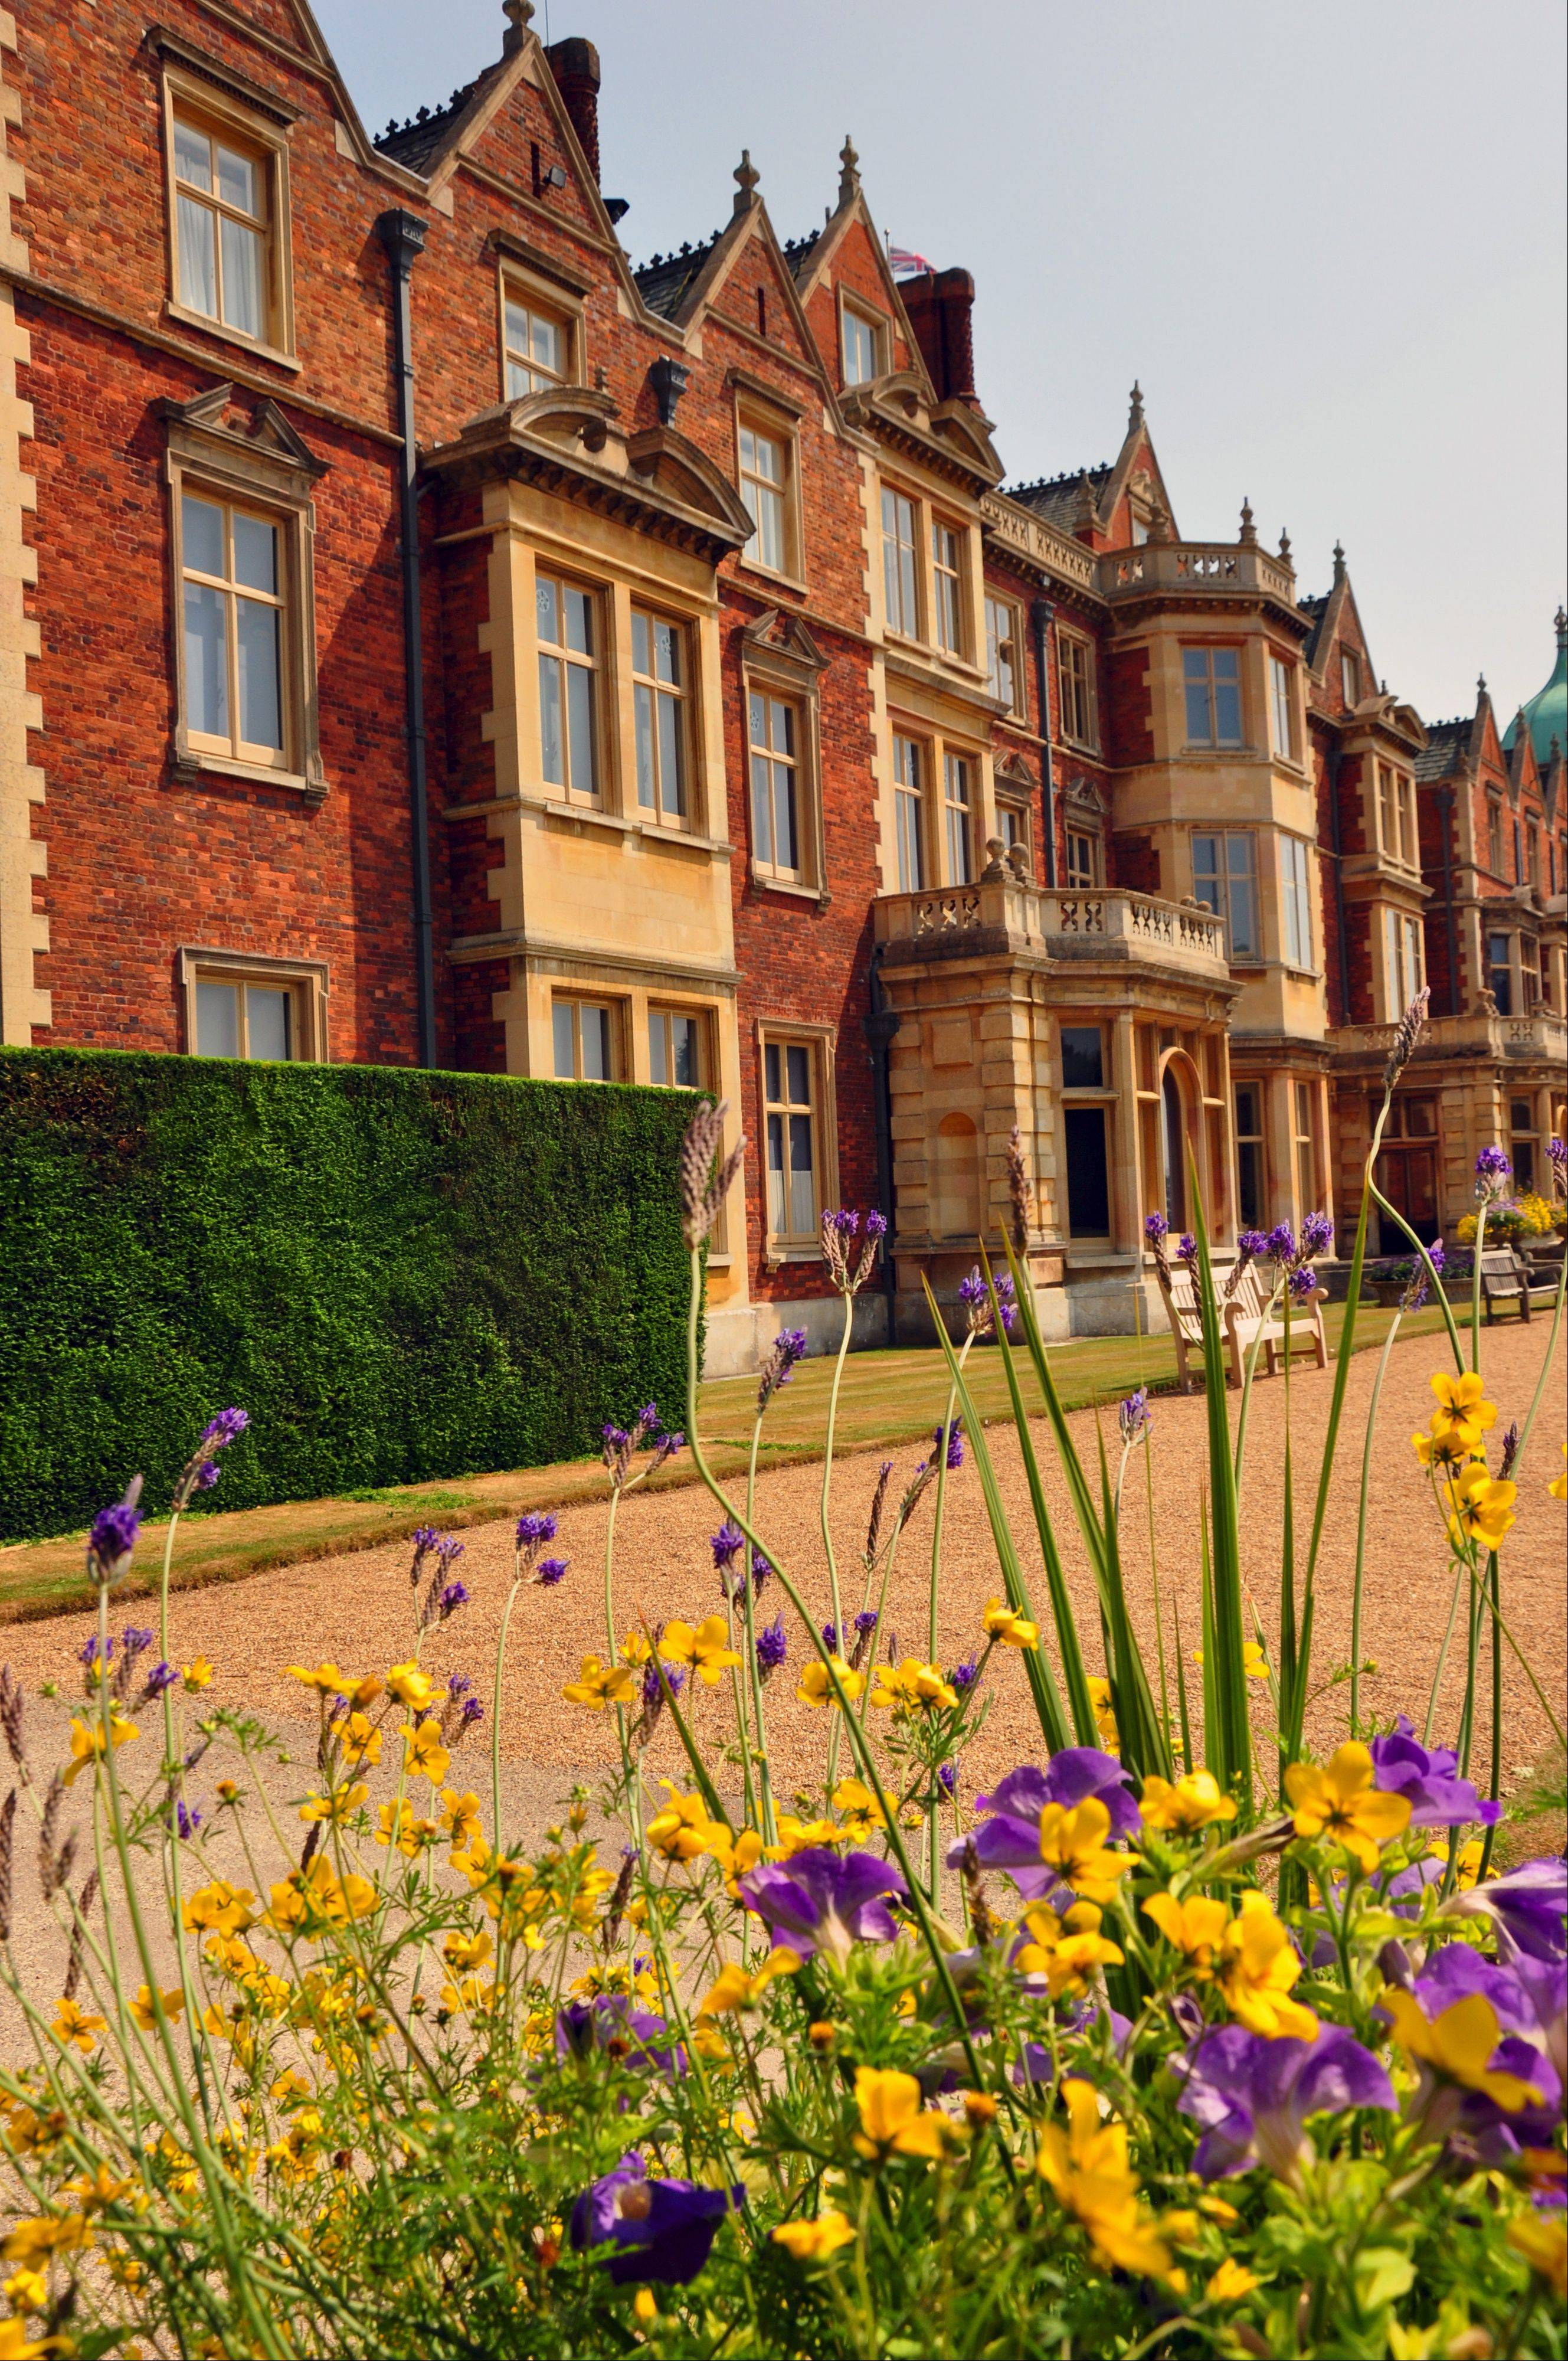 The royal family spends the winter, and especially Christmas, at Sandringham, an estate in Norfolk north of London. From Easter through October, the royals depart and the house is open for public tours.